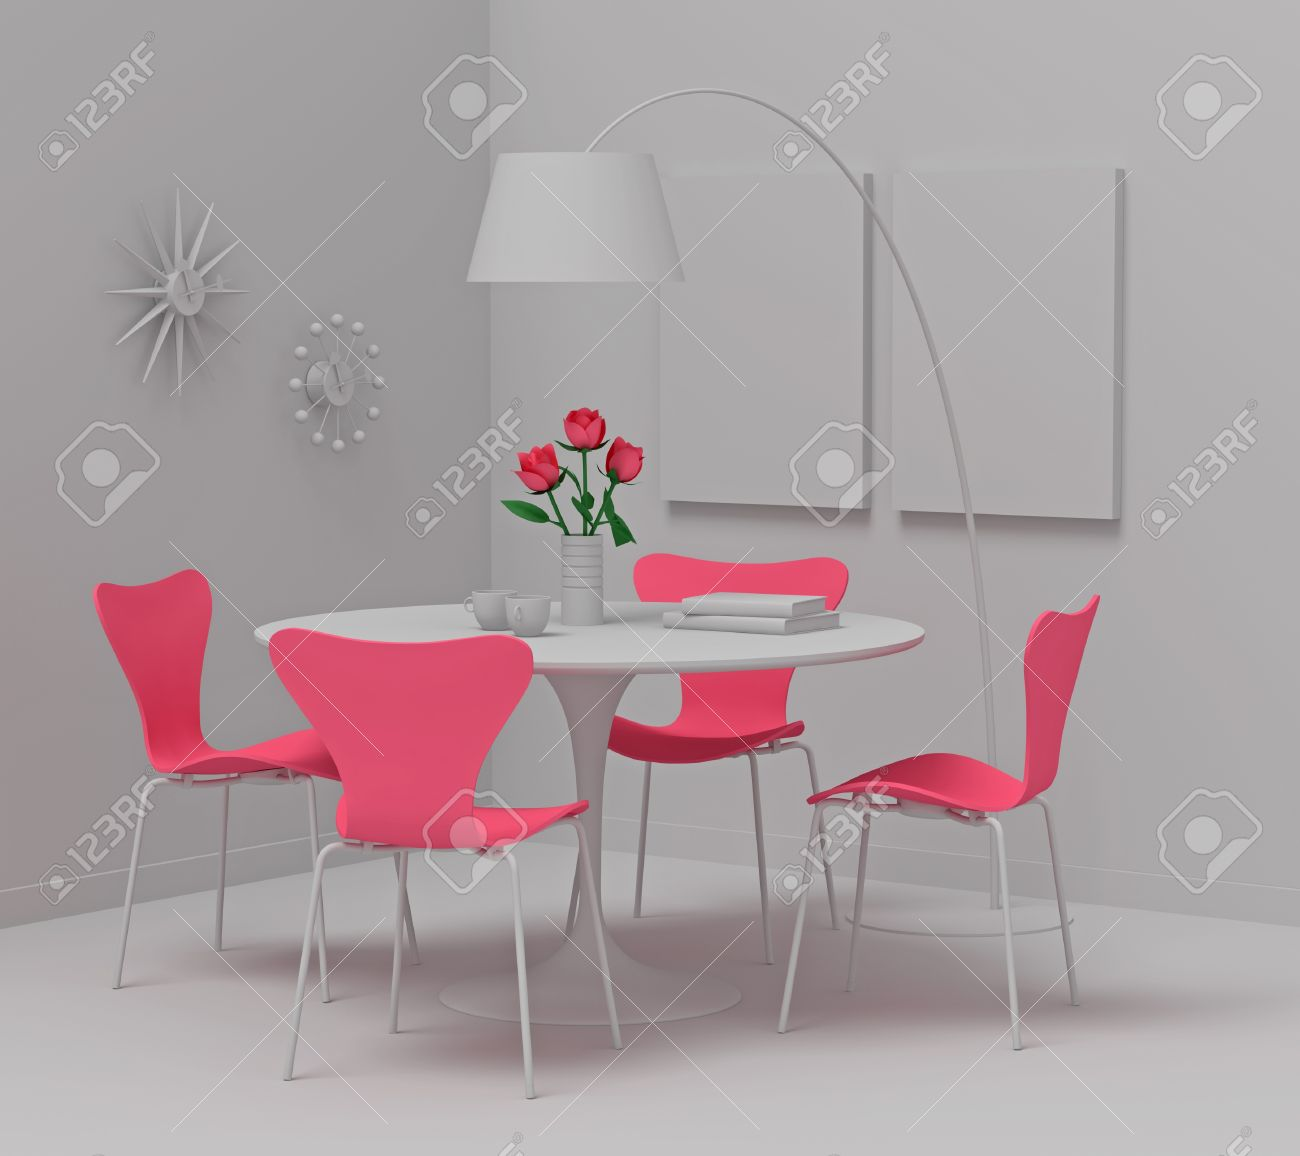 Home Interior Design Retro Furniture Clay Render With Pink Stock